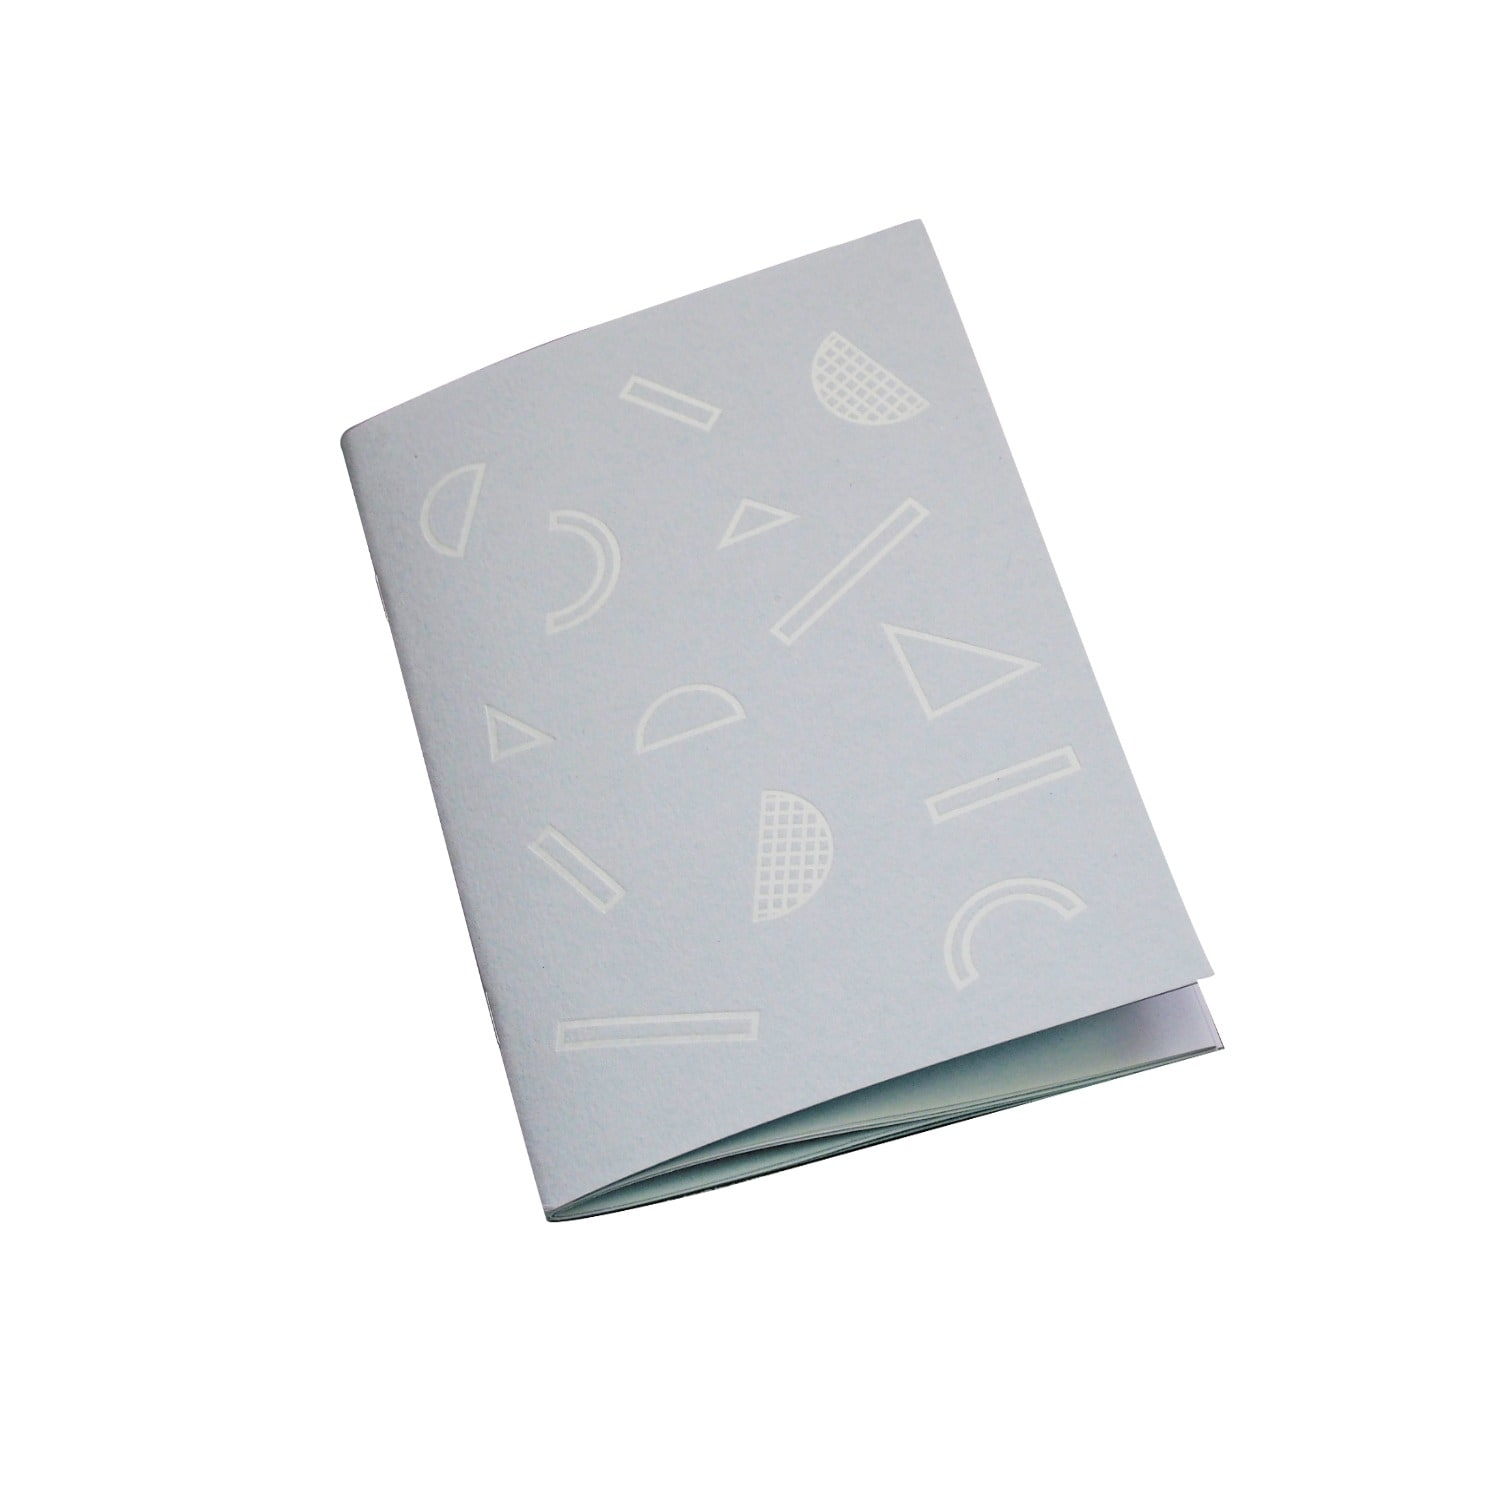 Nylon Sky - Foil Printed A6 Notebook Grey